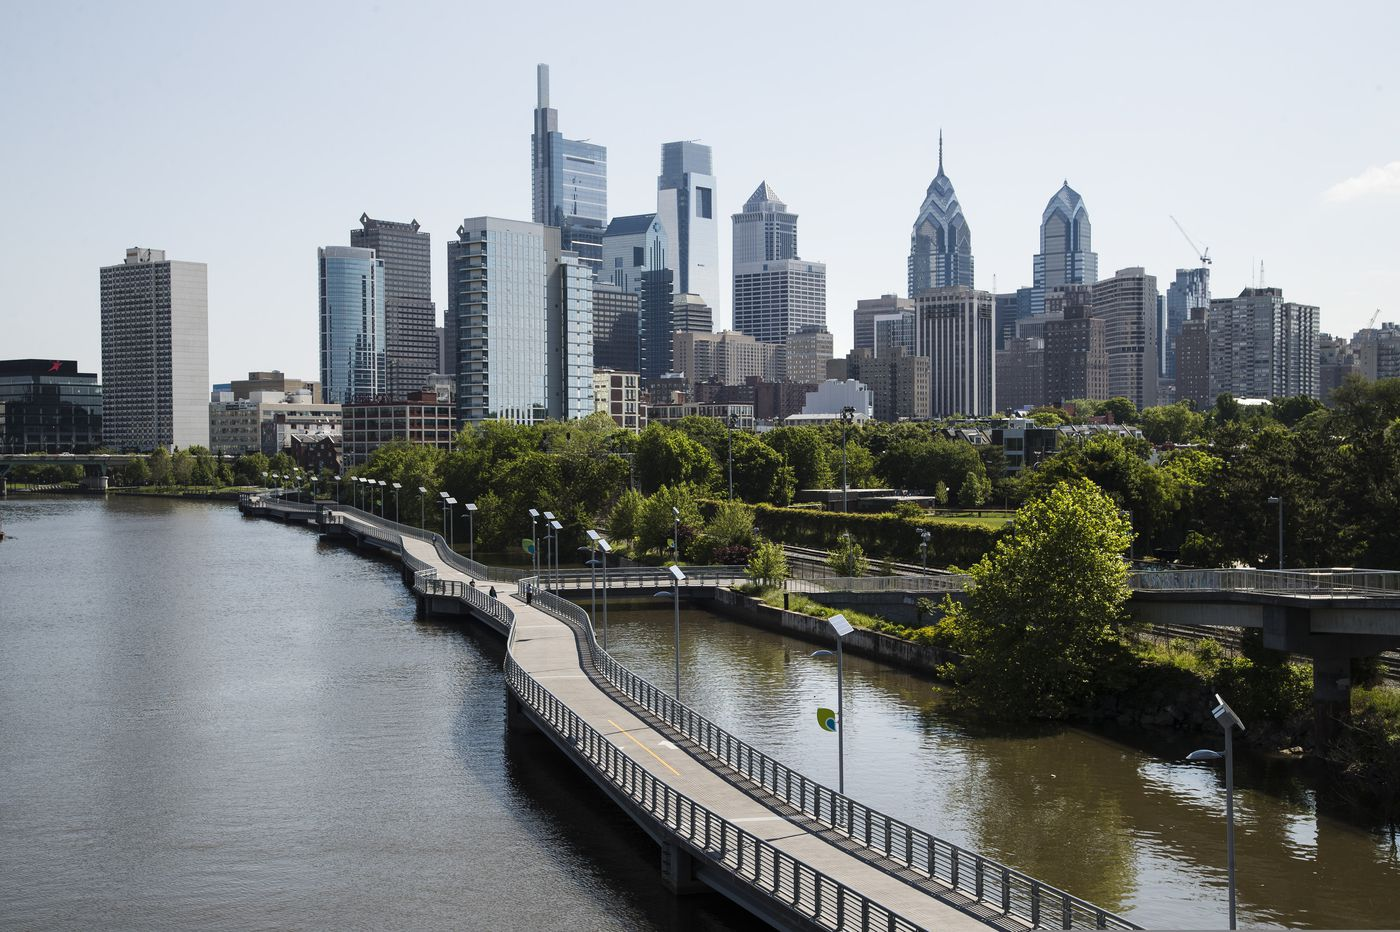 Philadelphia law firm, Faegre Drinker, temporarily closes 22 offices as precaution